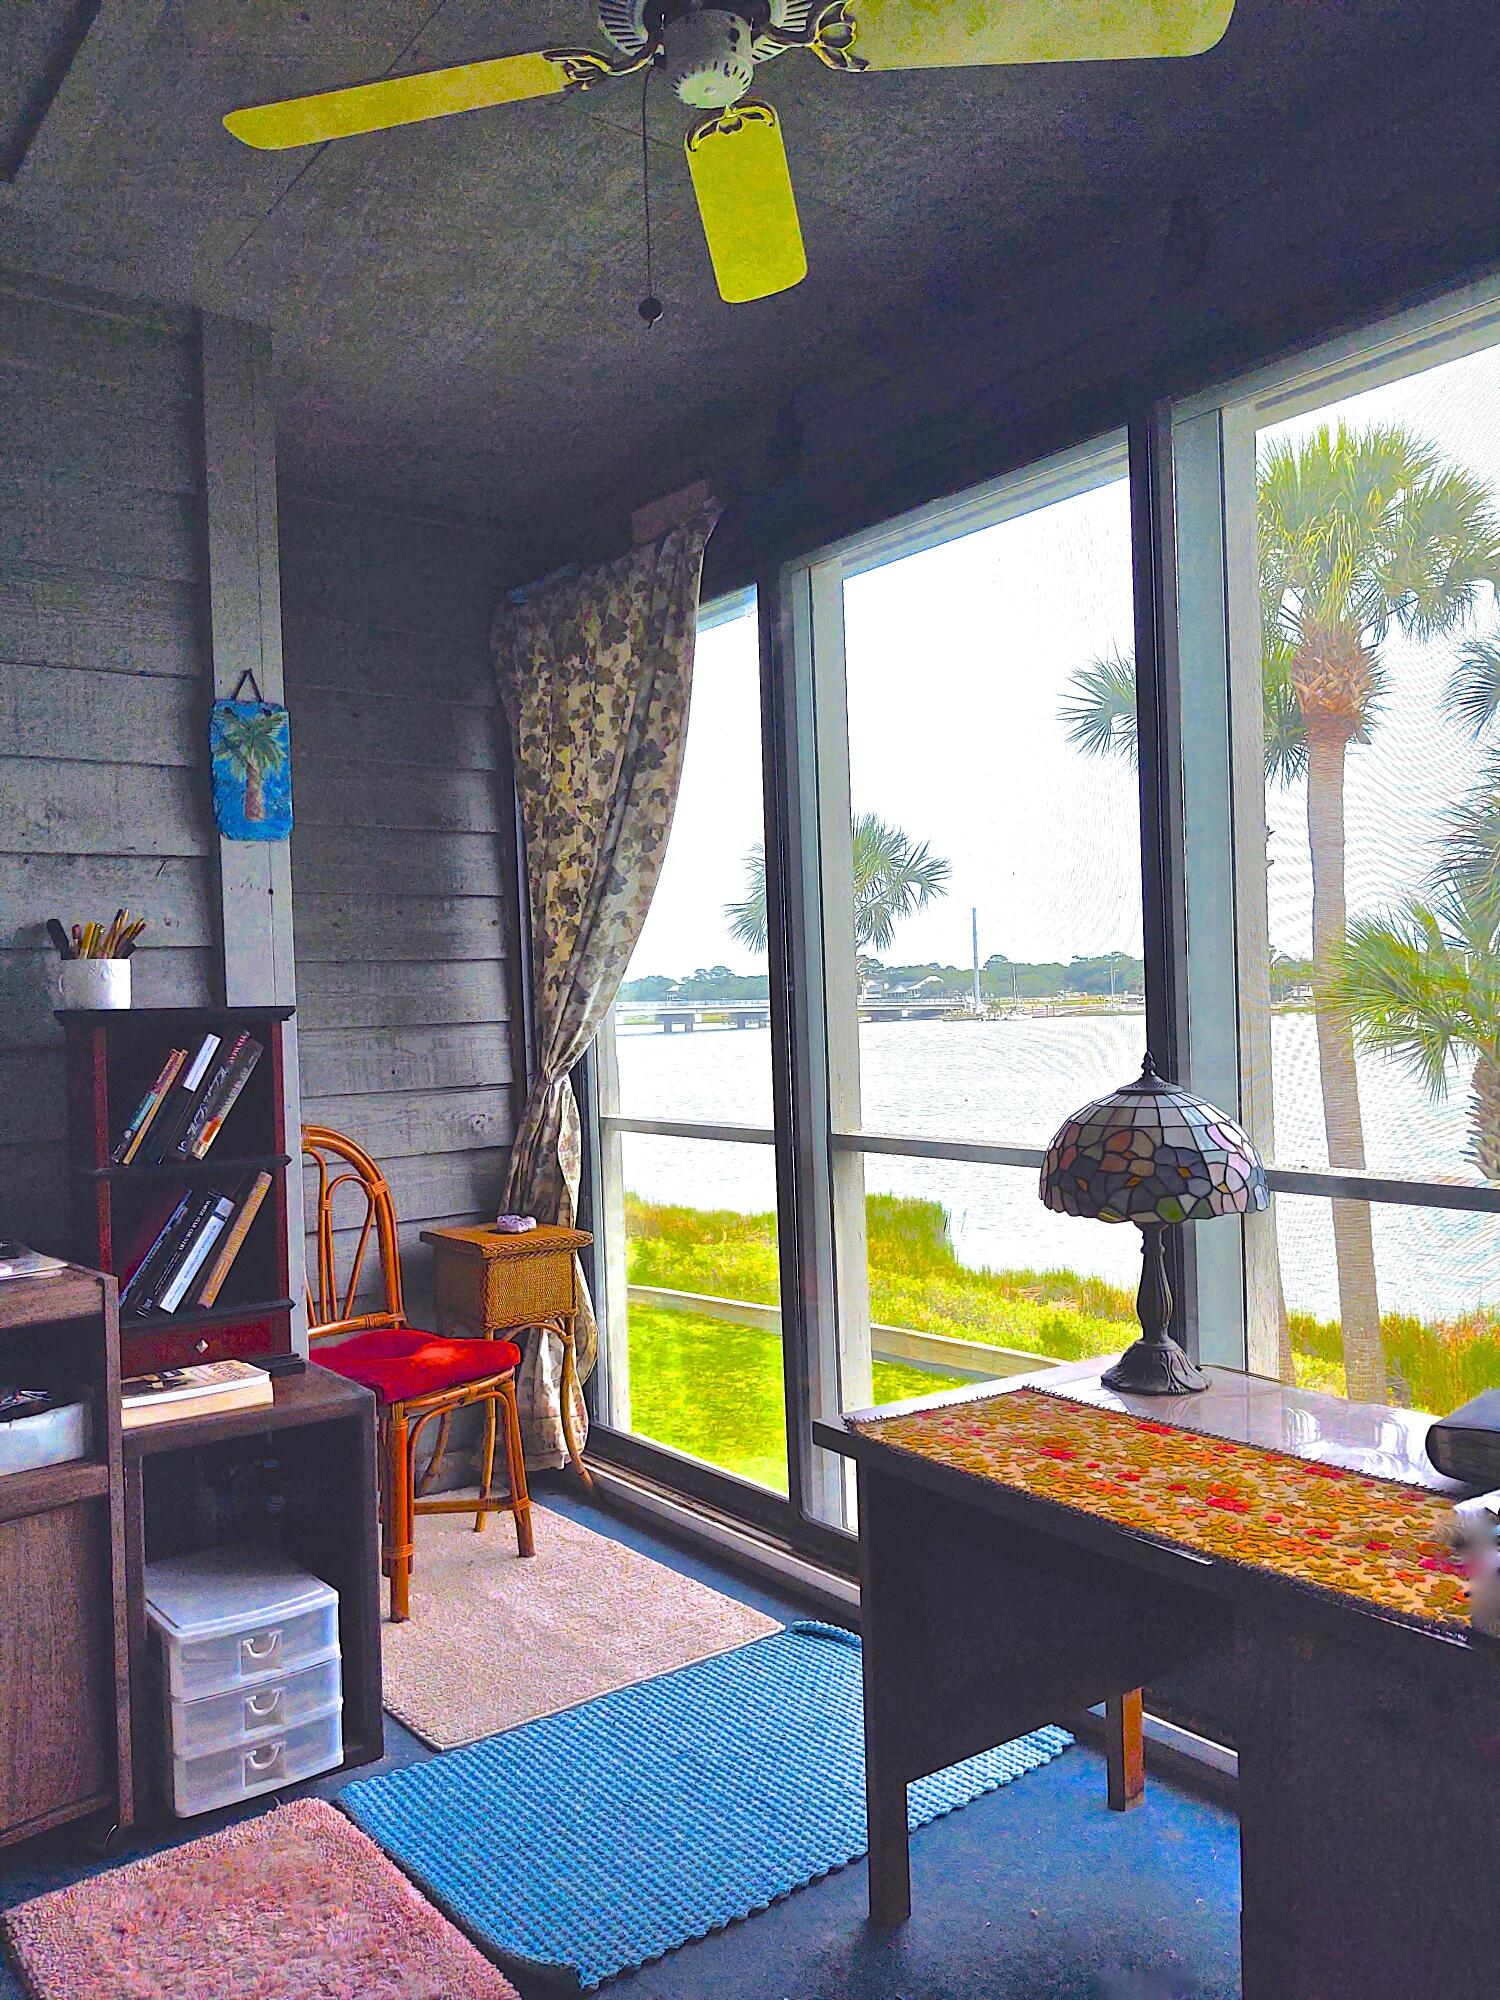 Mariners Cay Homes For Sale - 22 Mariners Cay, Folly Beach, SC - 4